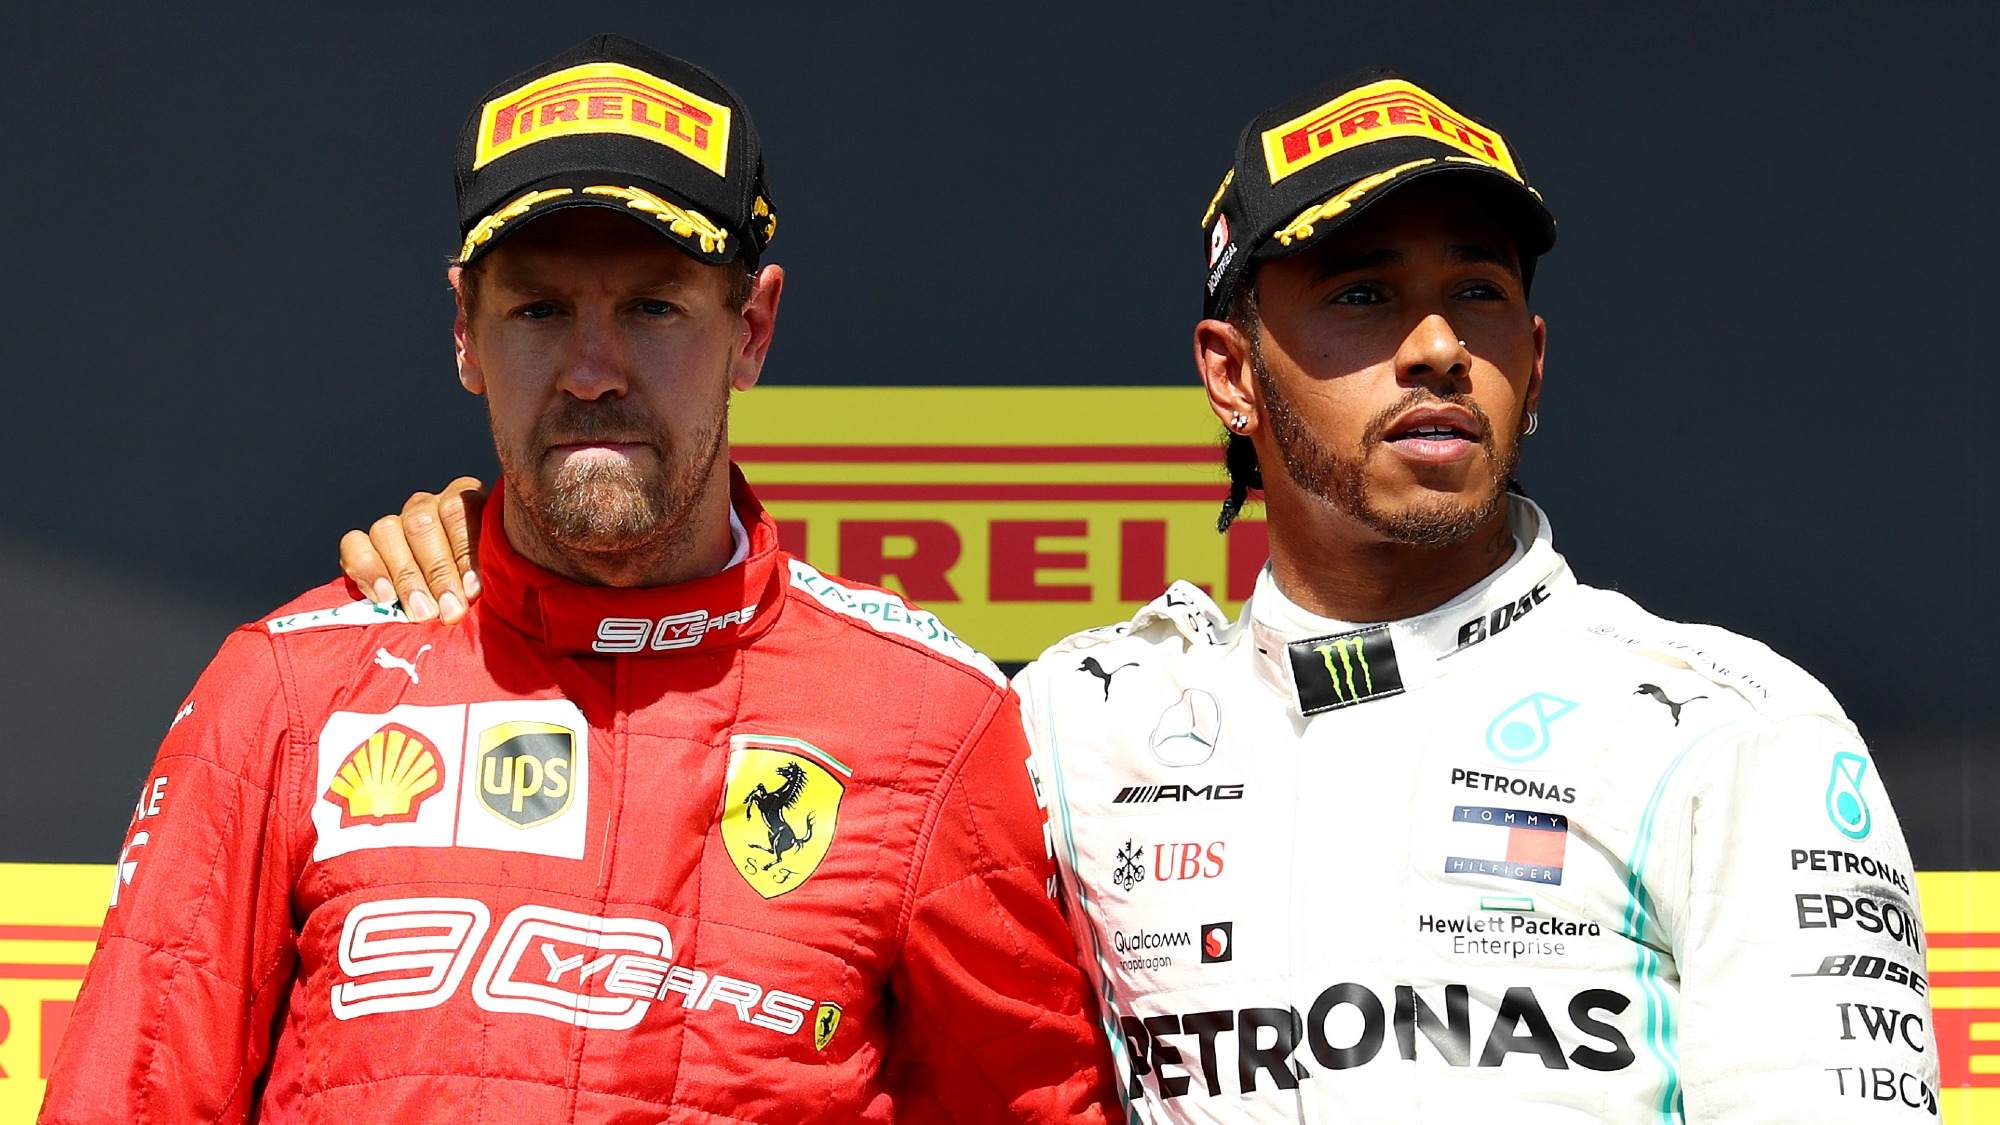 Lewis Hamilton vs Sebastian Vettel: a timeline of their rivalry